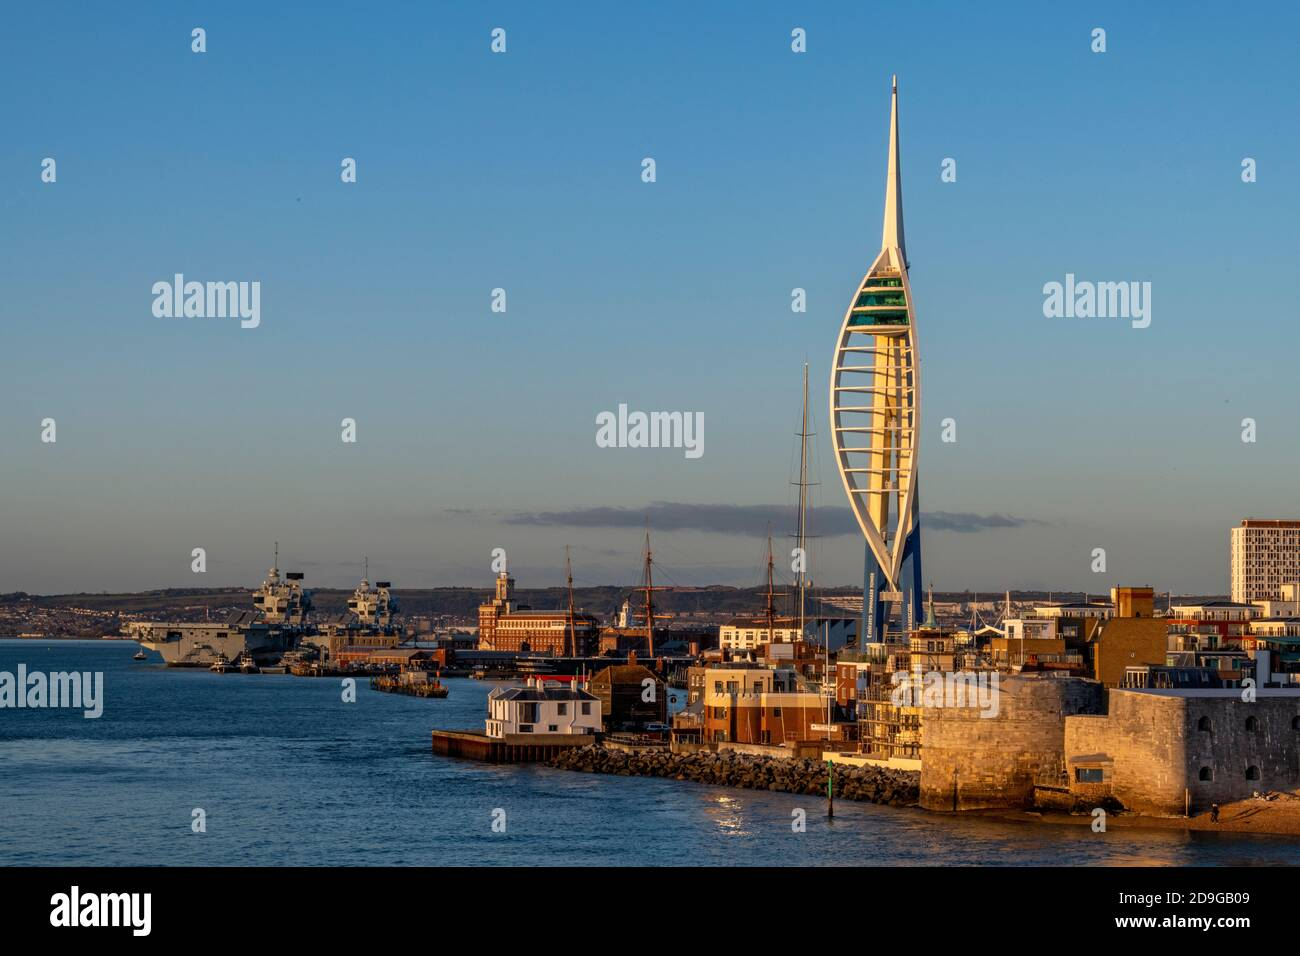 the entrance to the historic dockyard harbour at portsmouth on the south coast of the uk on the solent. Stock Photo